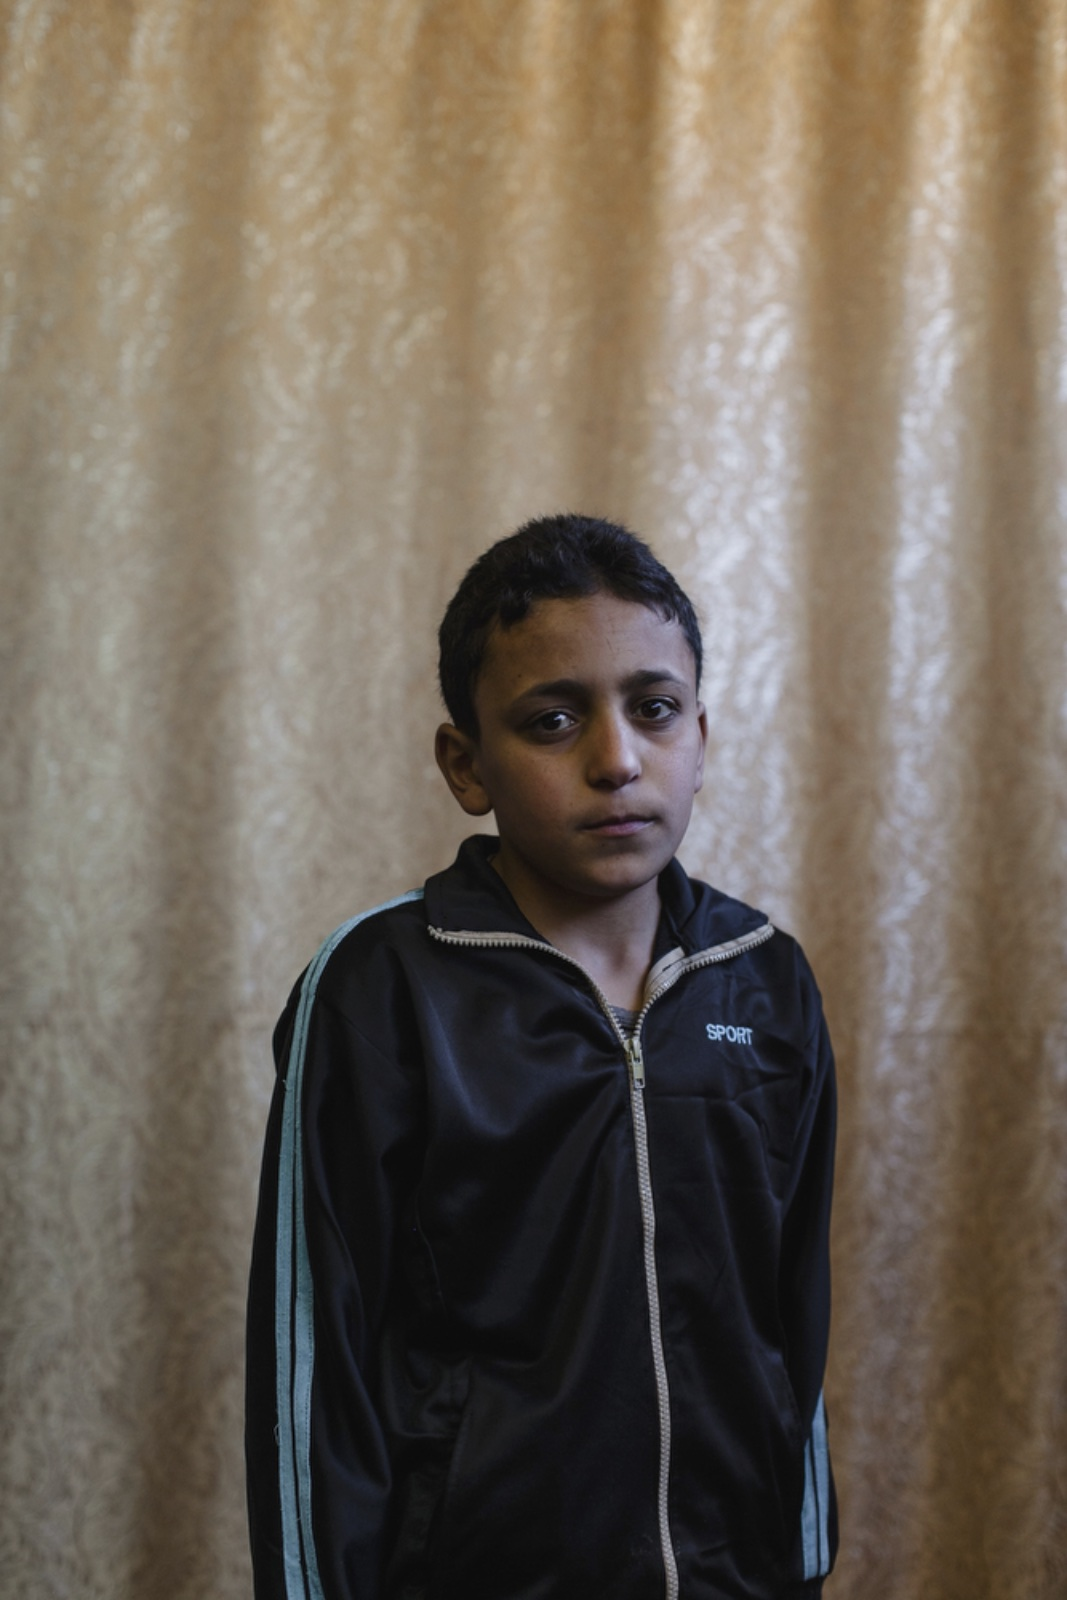 Mohamad Maher, 12, a Syrian refugee from Daraa, has been living in Amman, Jordan, for three years poses for a portrait in the community center room at Dar Al-Ihsan For Orphans. His mother died during childbirth. Dar Al-Ihsan For Orphans was started in April 2014 and provides education, housing, food vouchers, medical insurance and other services to the most vulnerable cases. (Christopher Lee/GroundTruth)